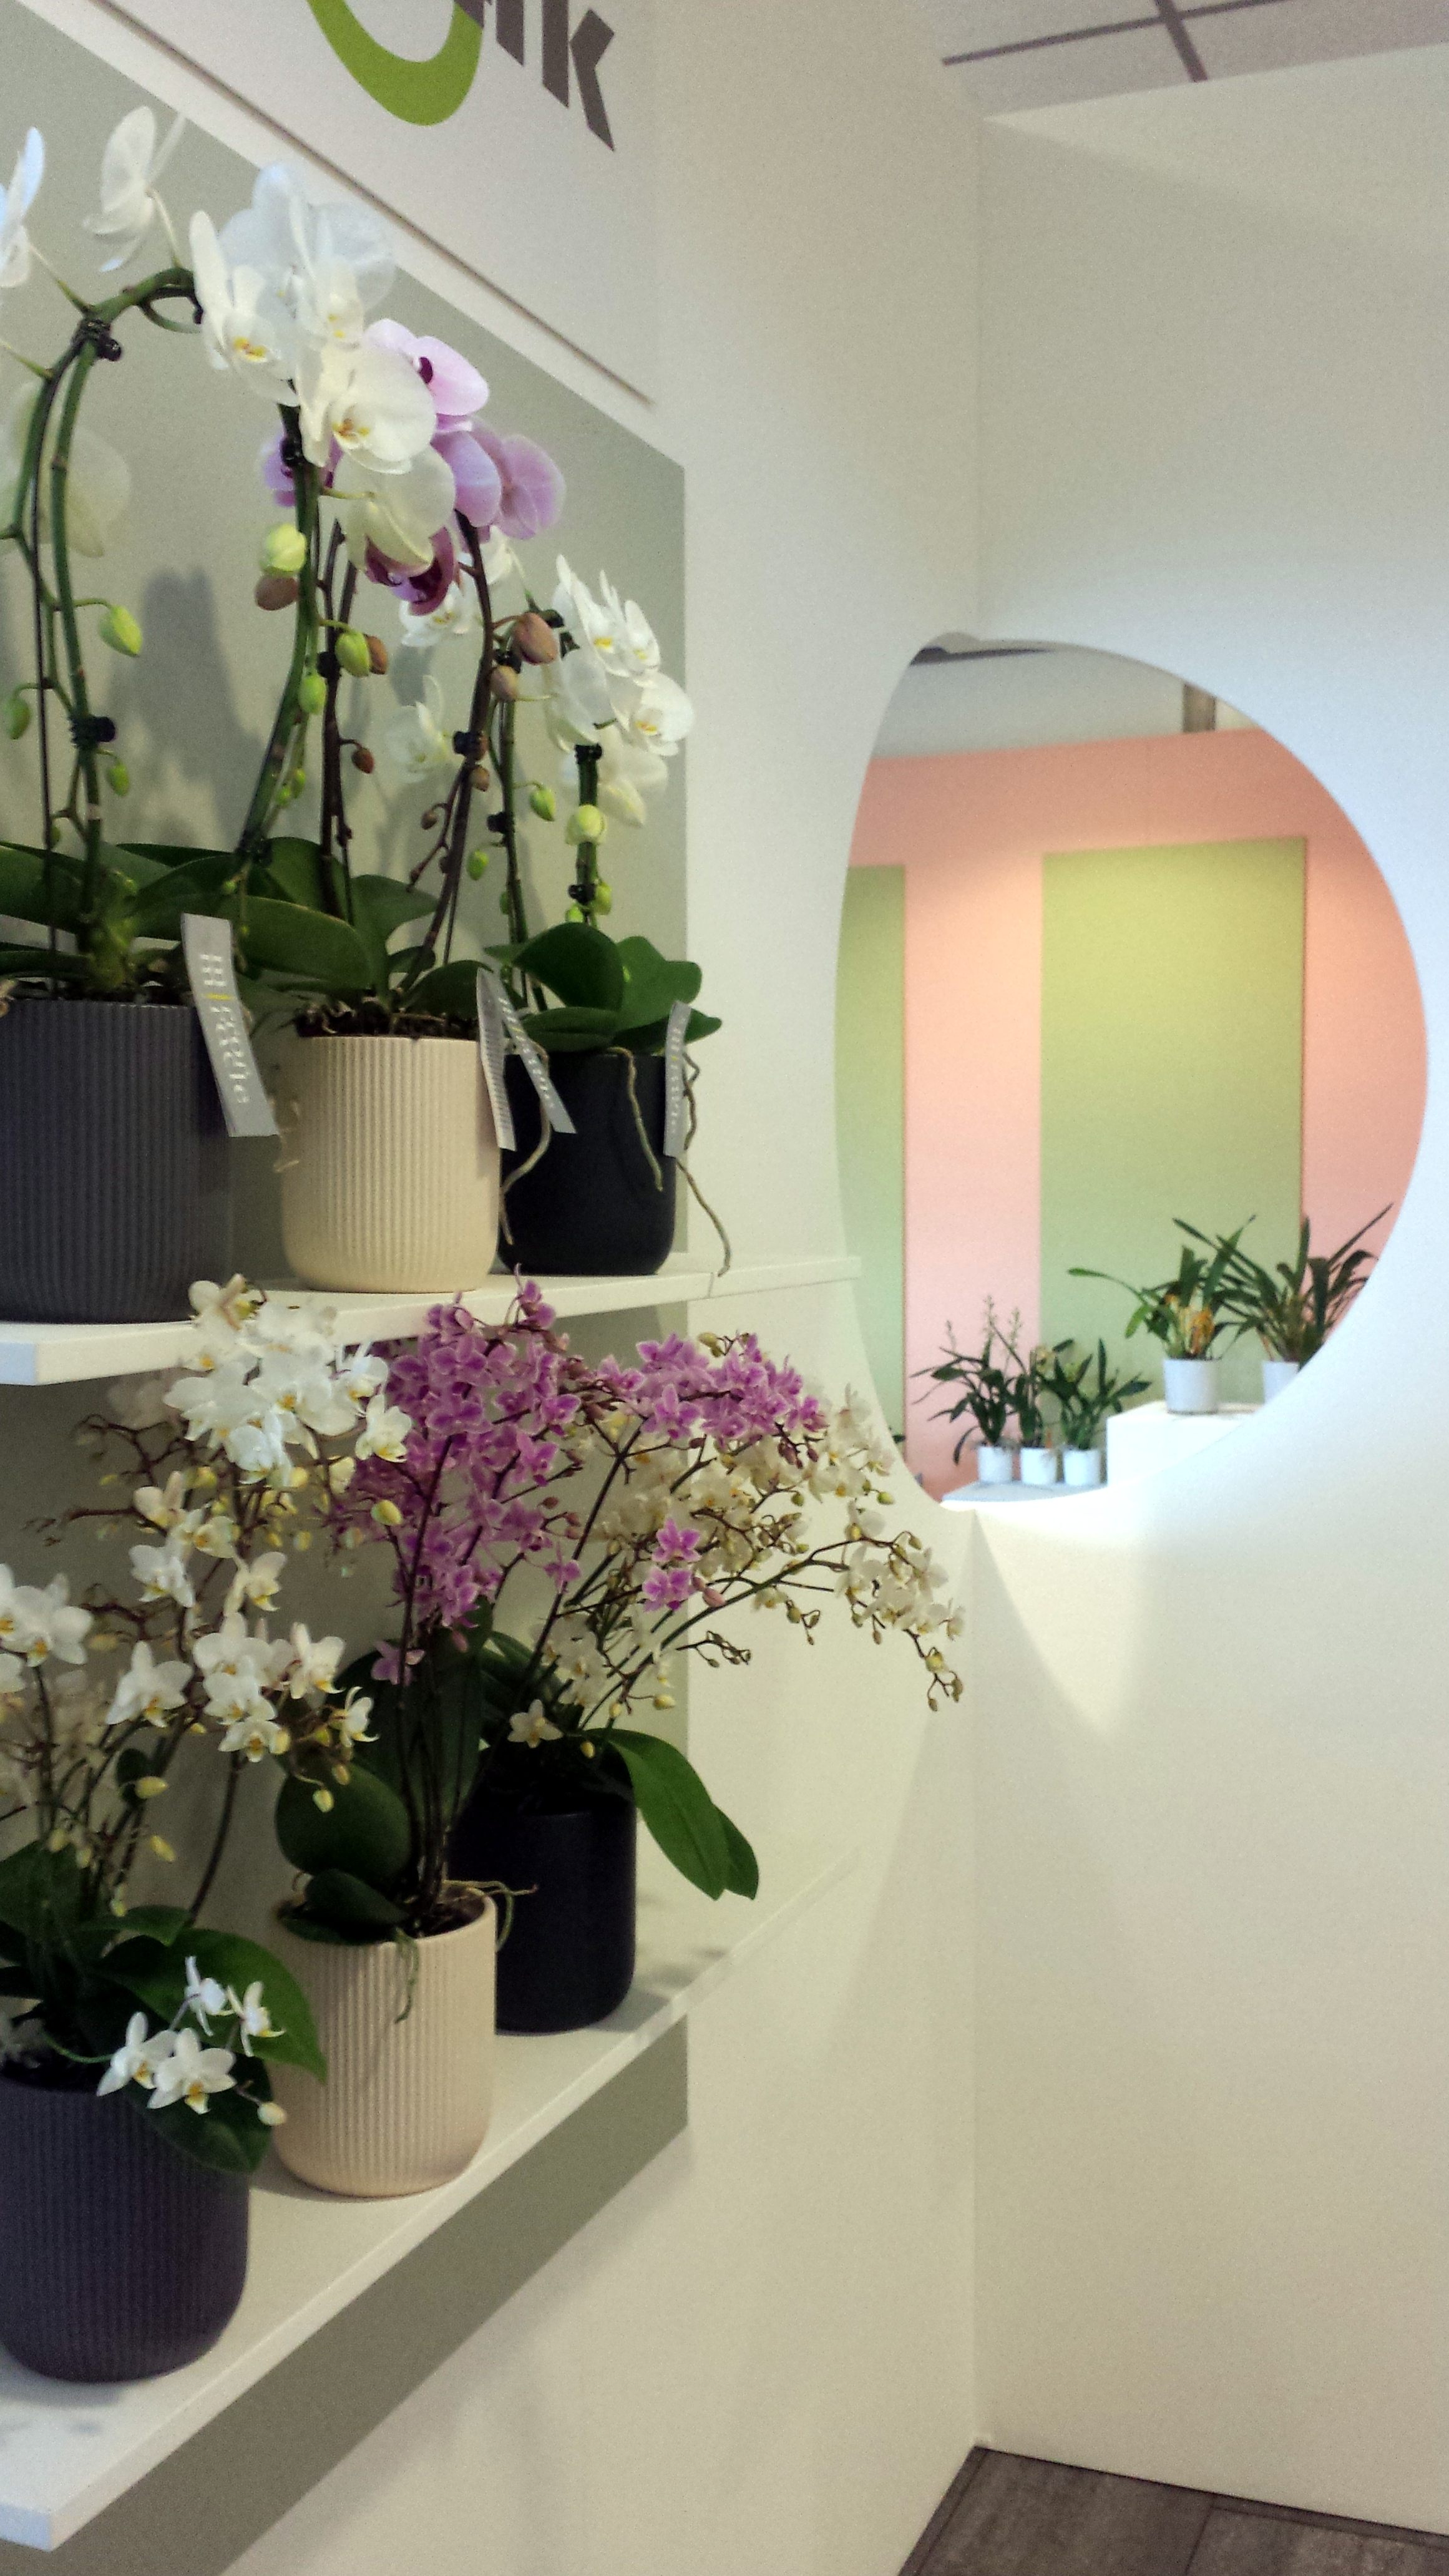 Opti flor inspirationdays 2017 maakmeester for Home decoration meester